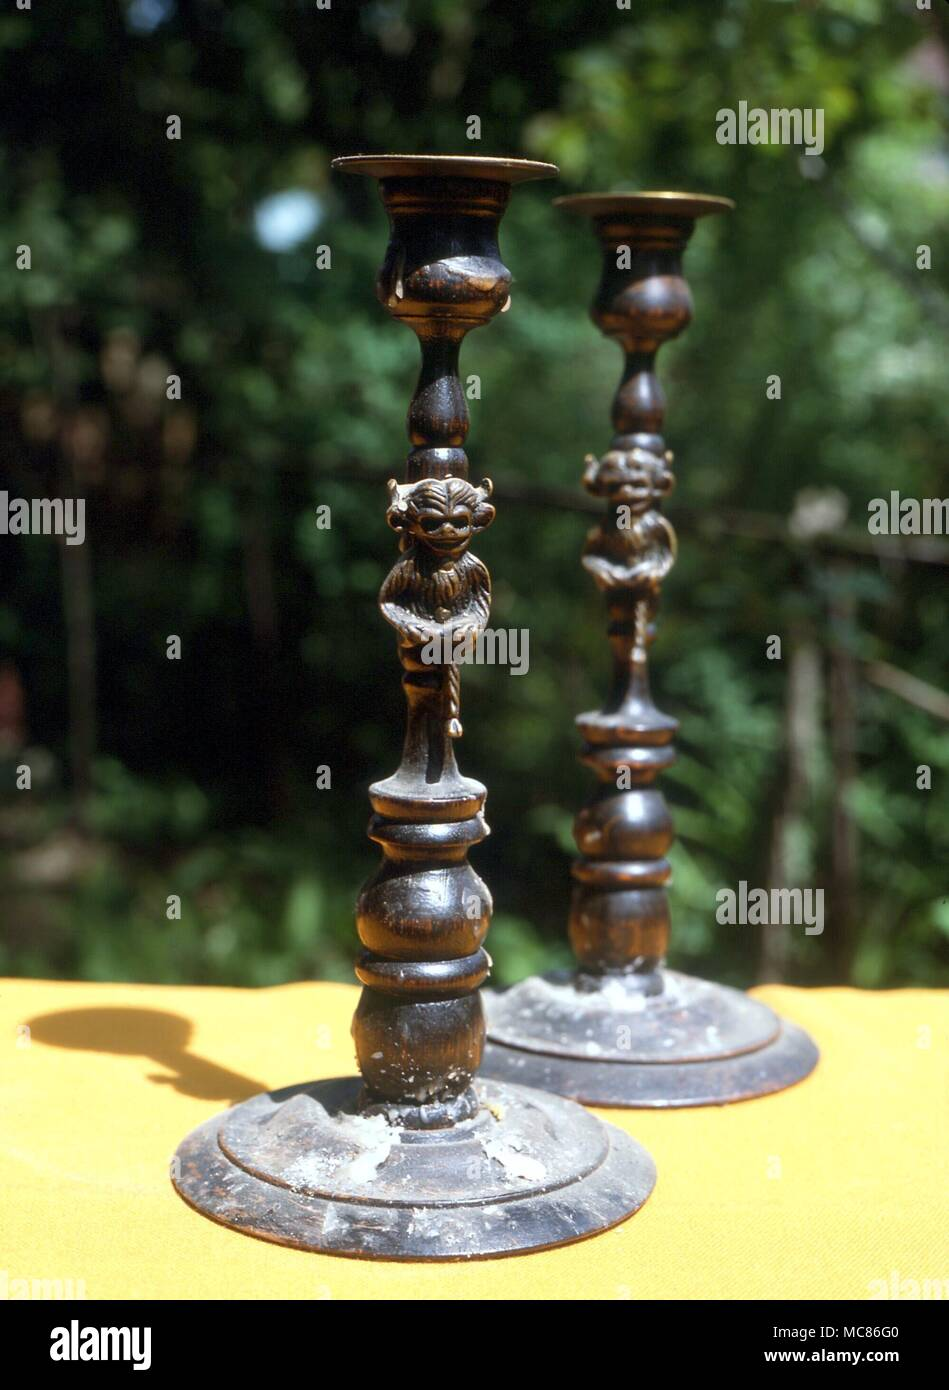 Wiccan candleholders Candle holders with image of the so-called Lincoln demon on stem.  This candleholder is used in wican rituals.  private collection, Toronto - Stock Image